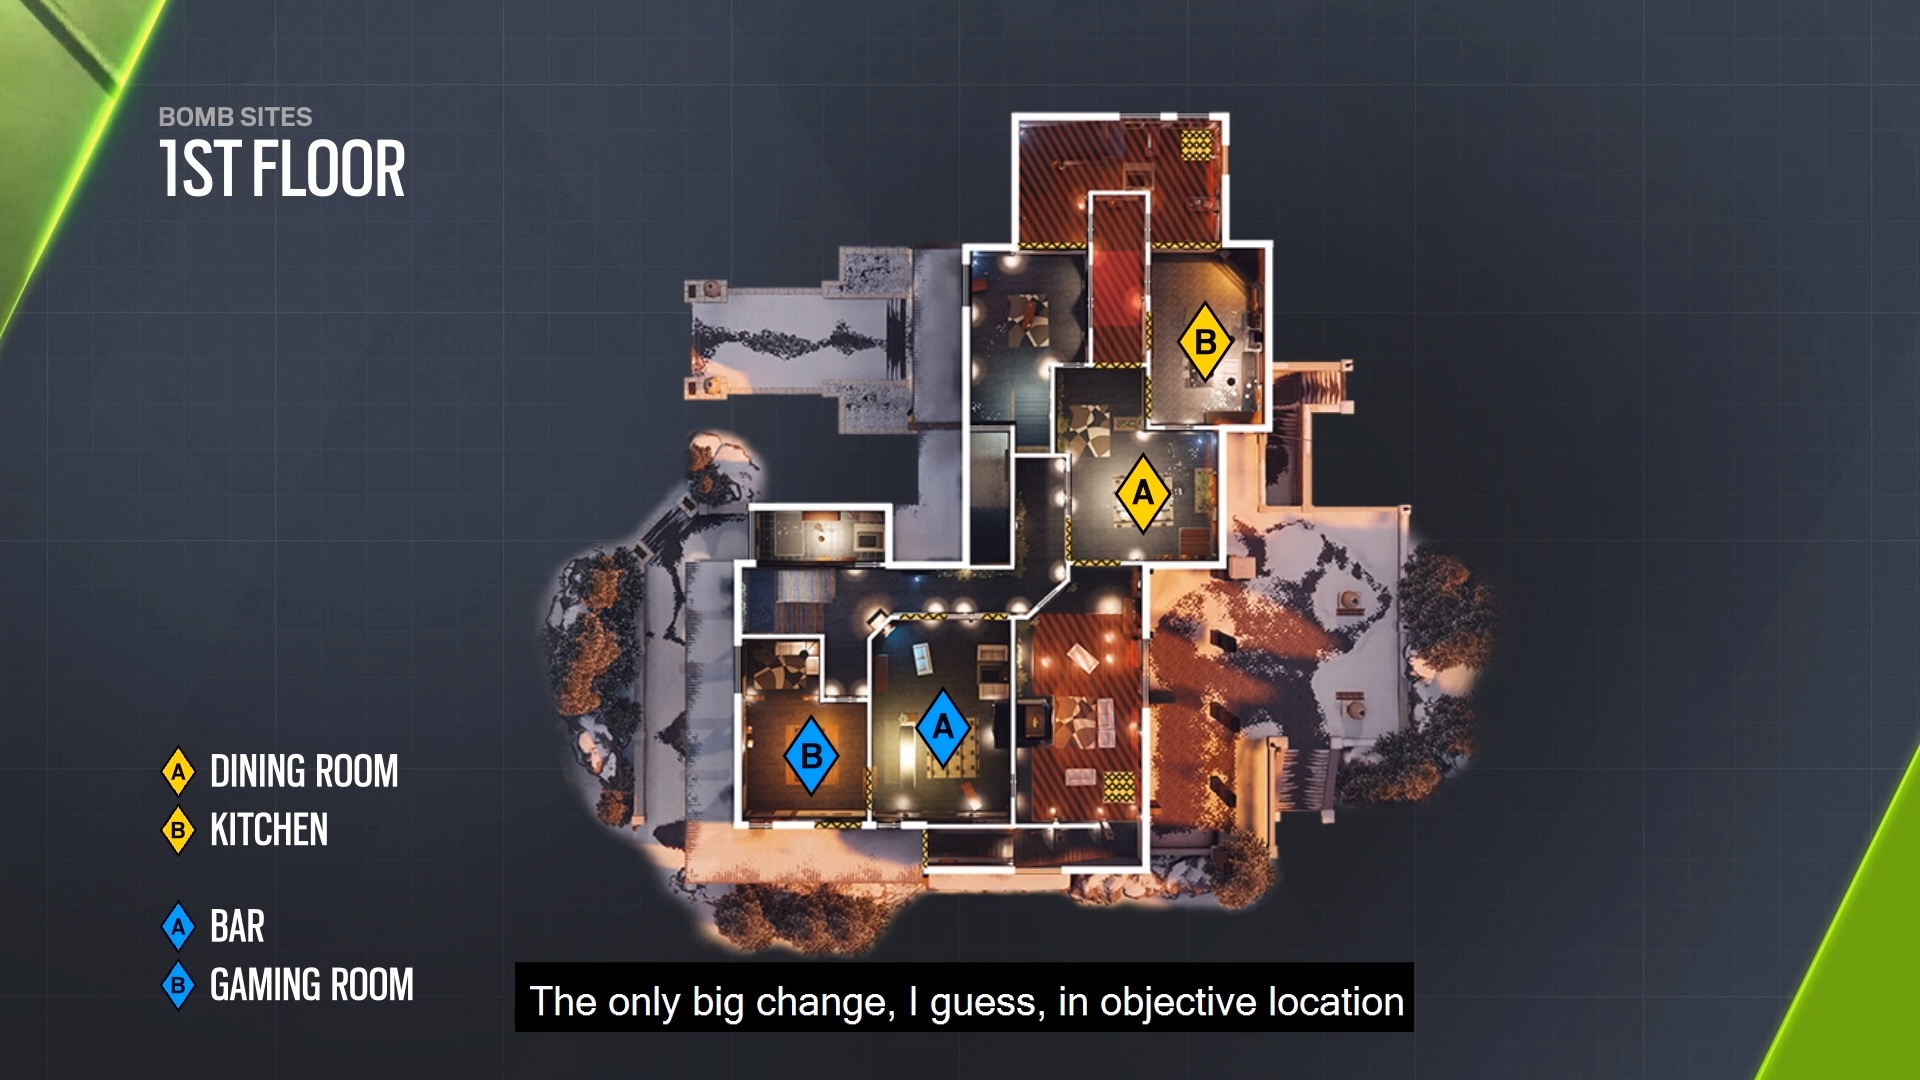 Operation Shadow Legacy changes